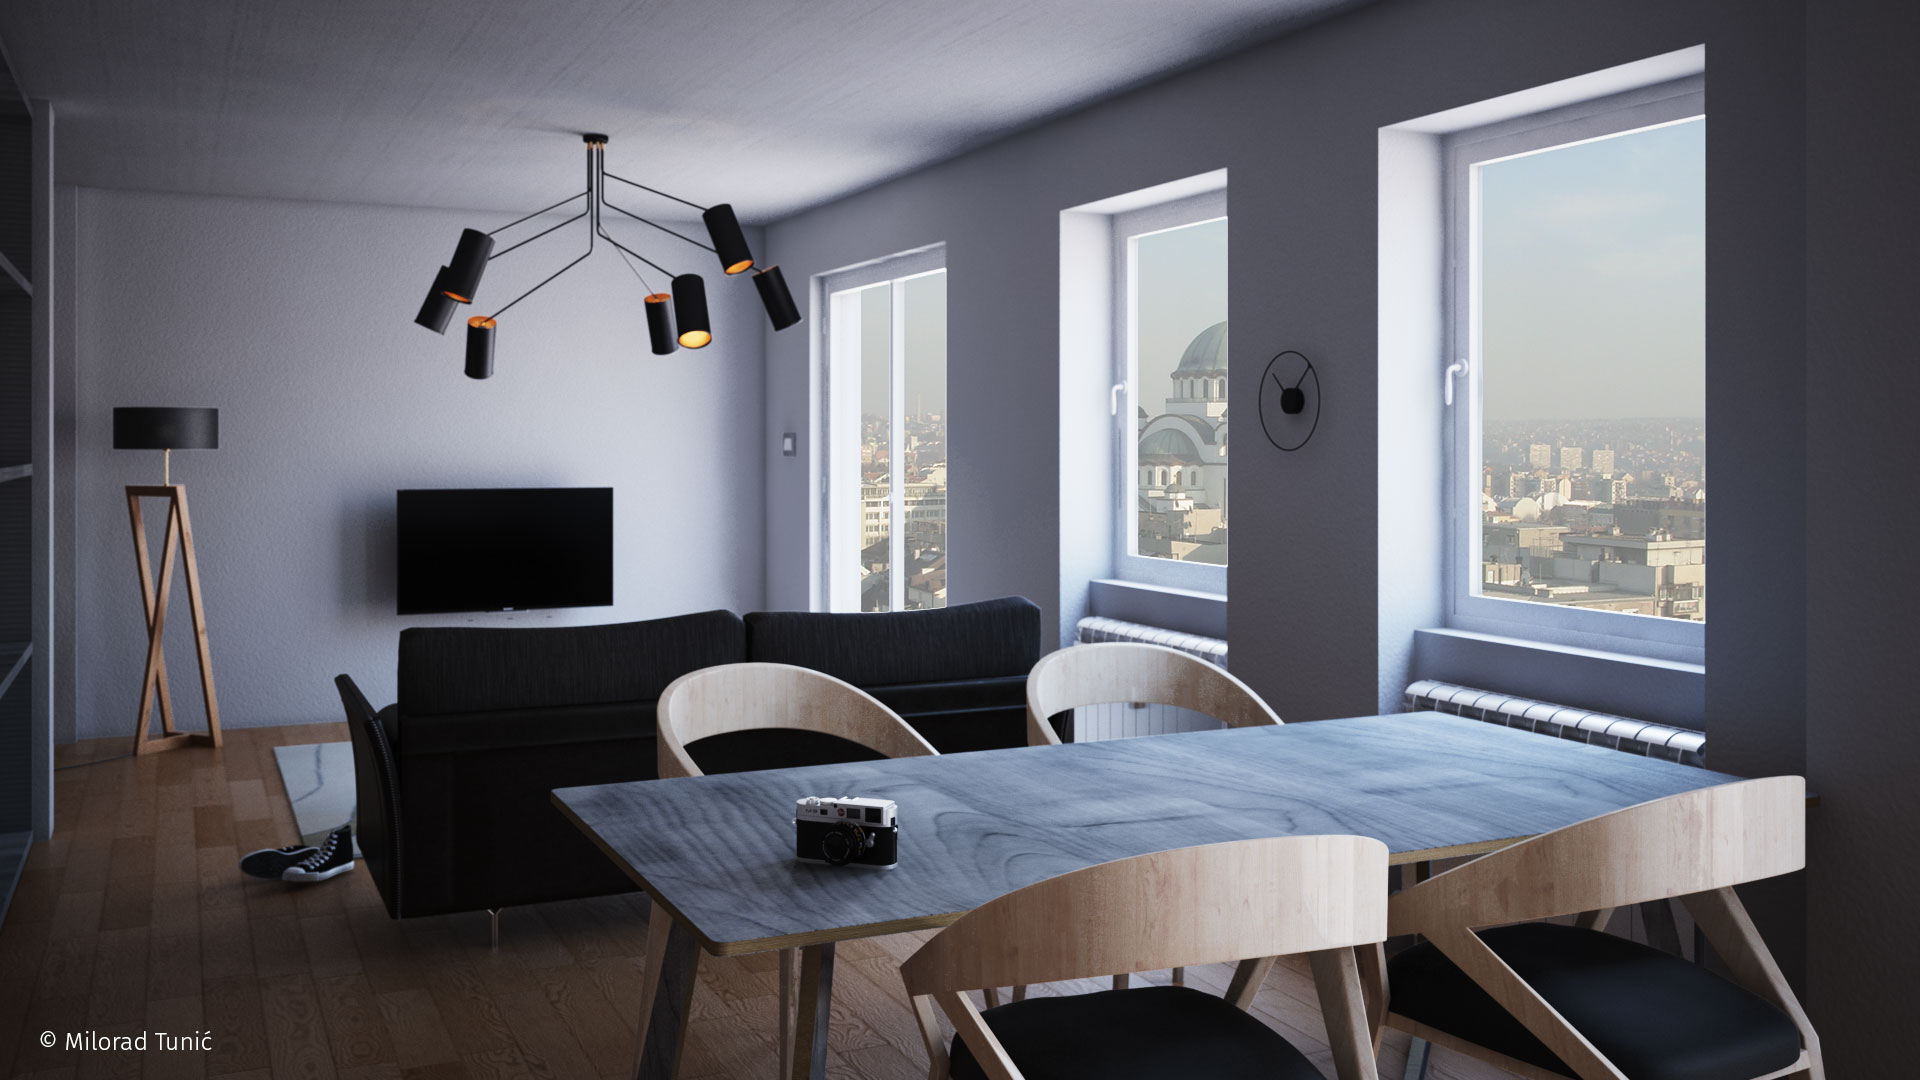 Interior visualization 3ds max and vray fabrika znanja for 3ds max interior